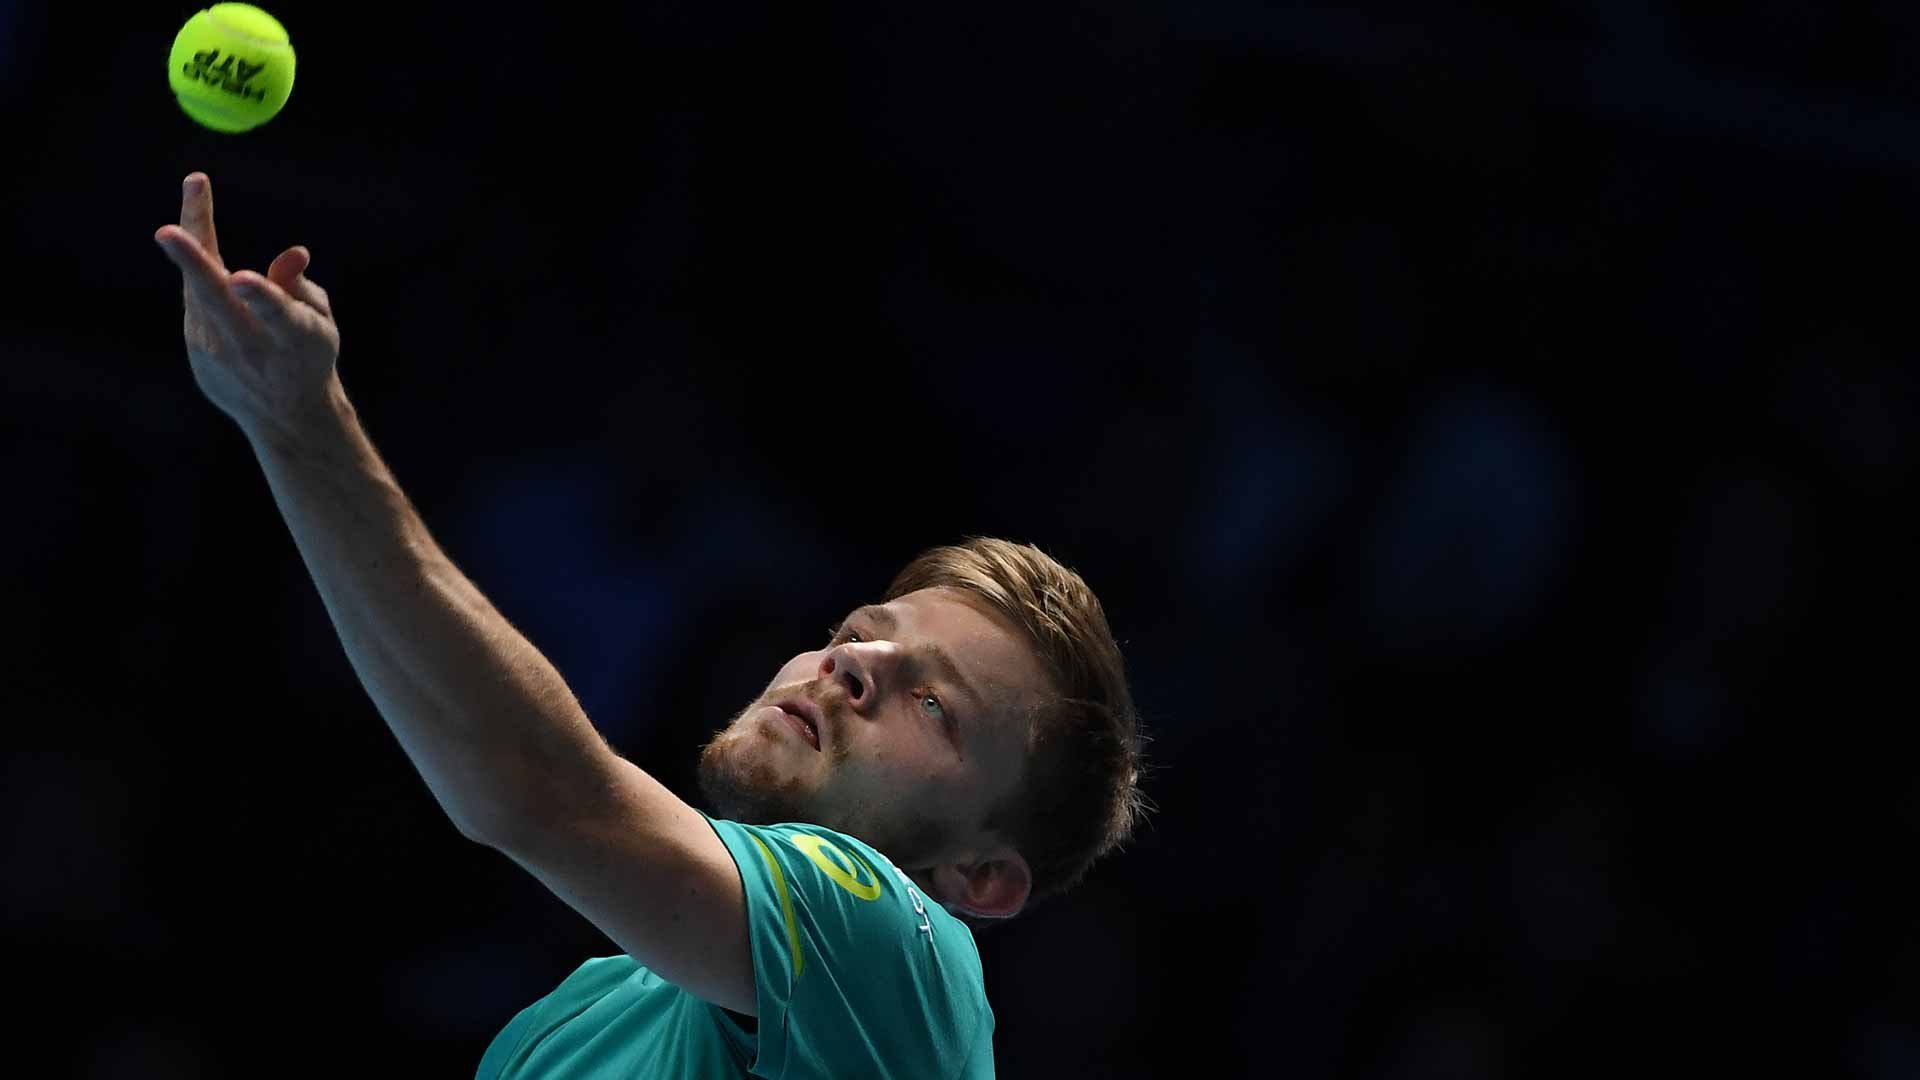 01-Goffin-Serve-Nitto-ATP-Finals-2017-Saturday